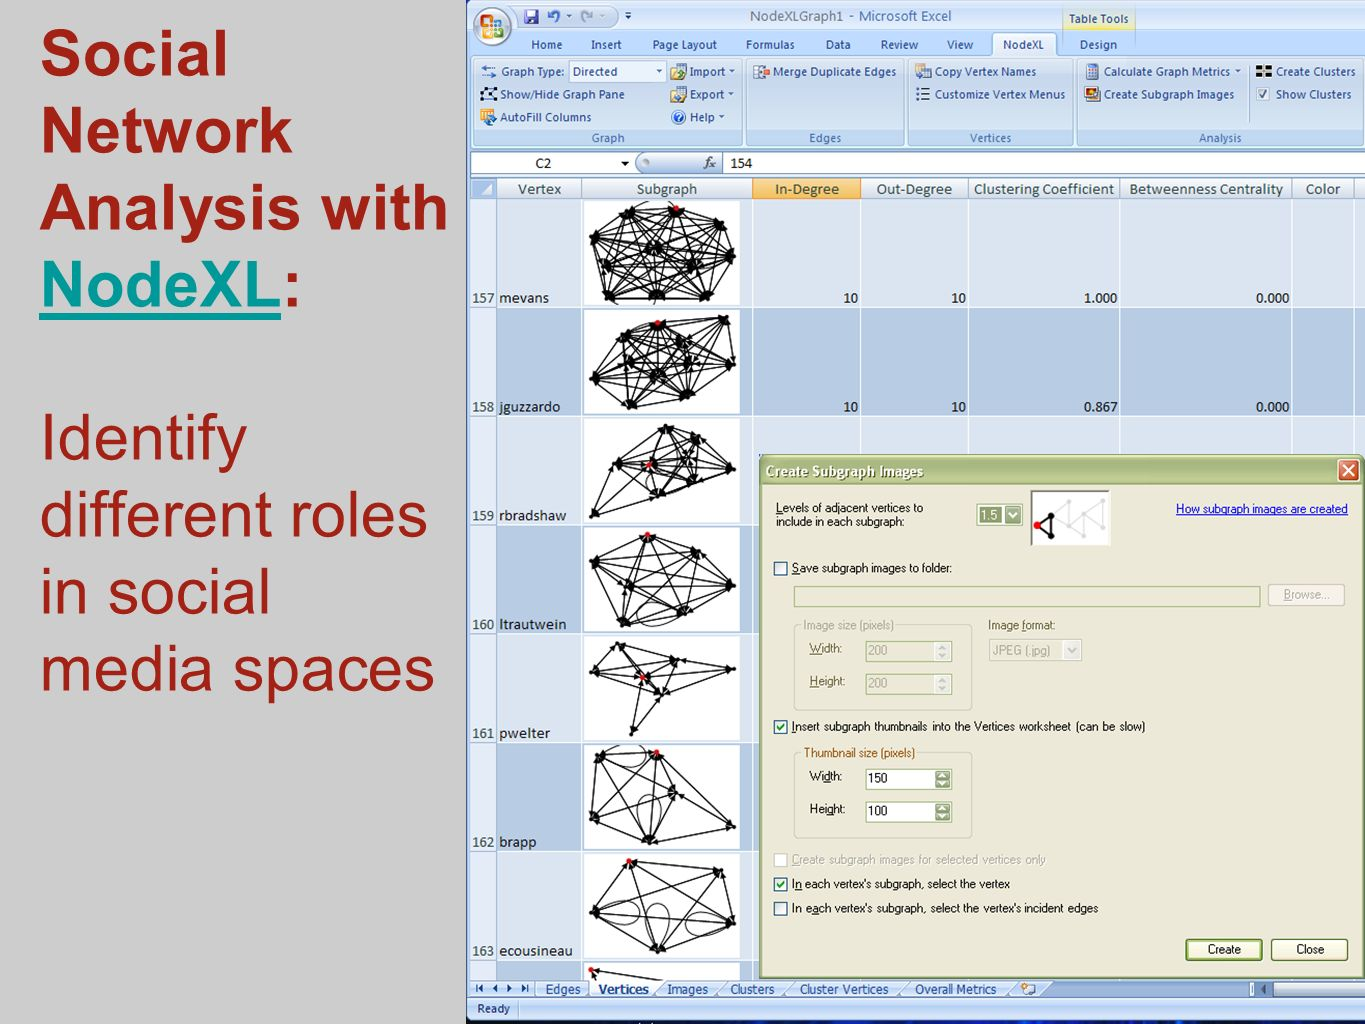 Social Network Analysis with NodeXL: Identify different roles in social media spaces